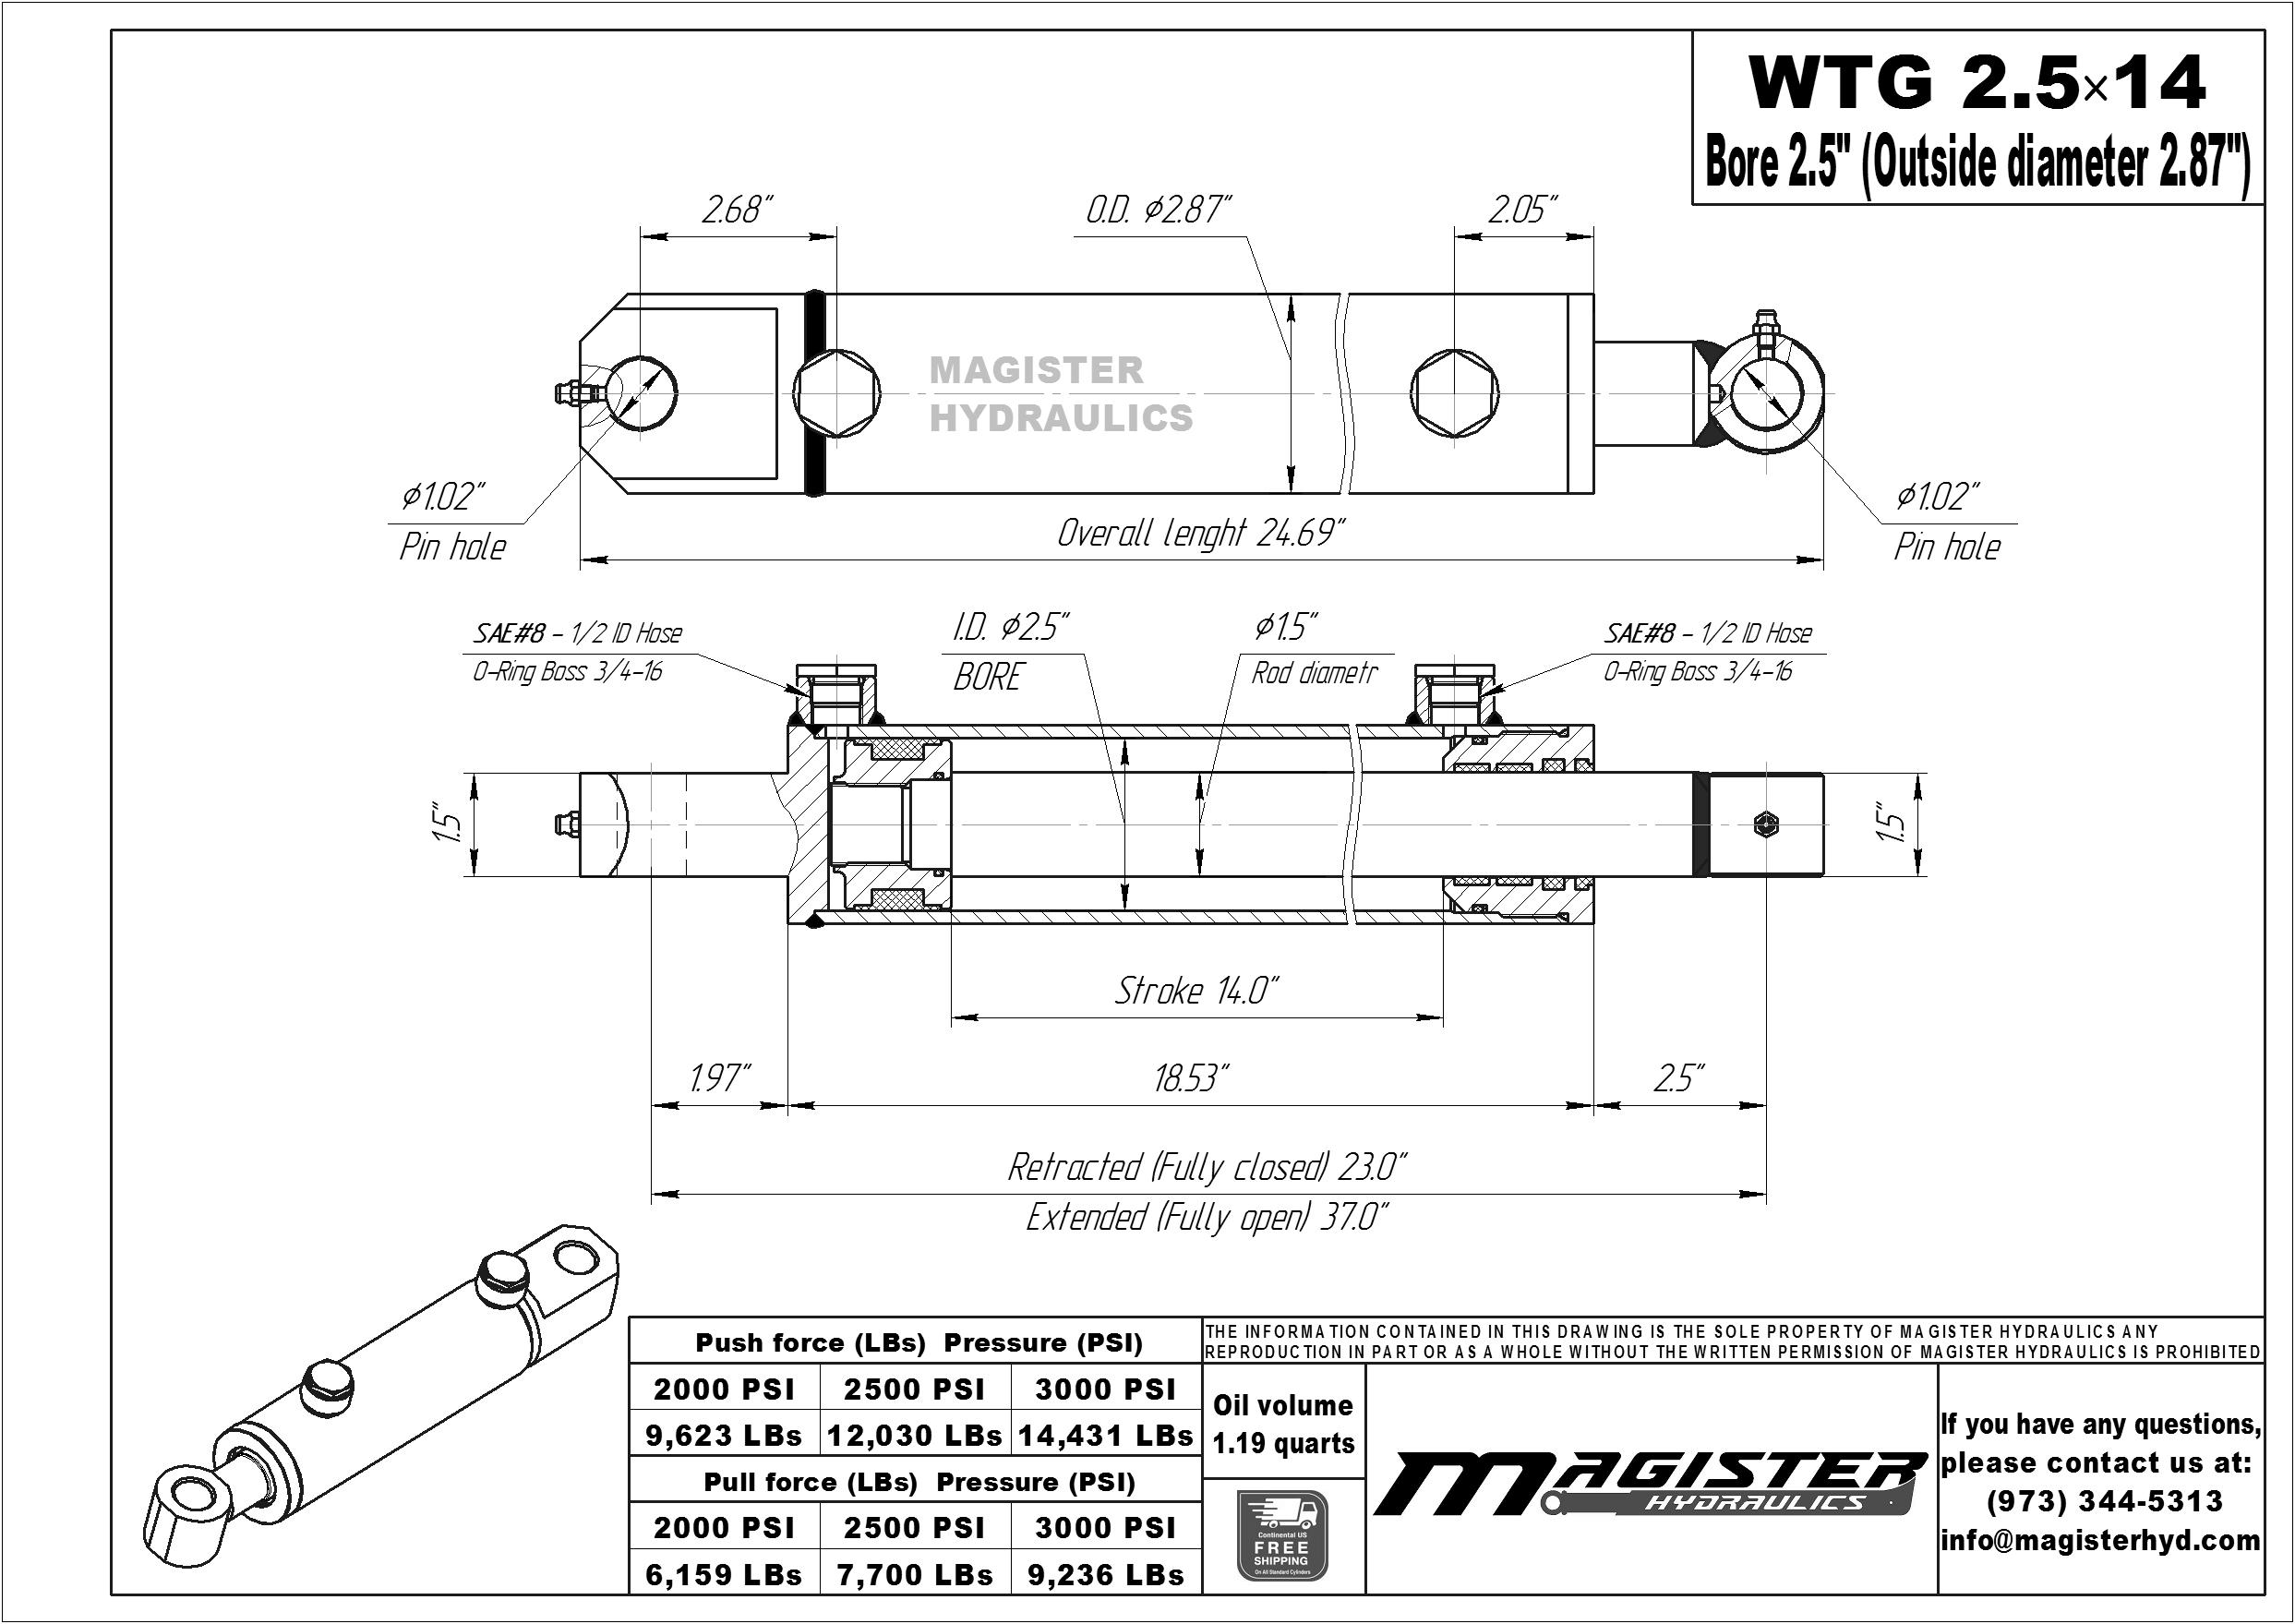 2.5 bore x 14 stroke hydraulic cylinder, welded tang double acting cylinder | Magister Hydraulics